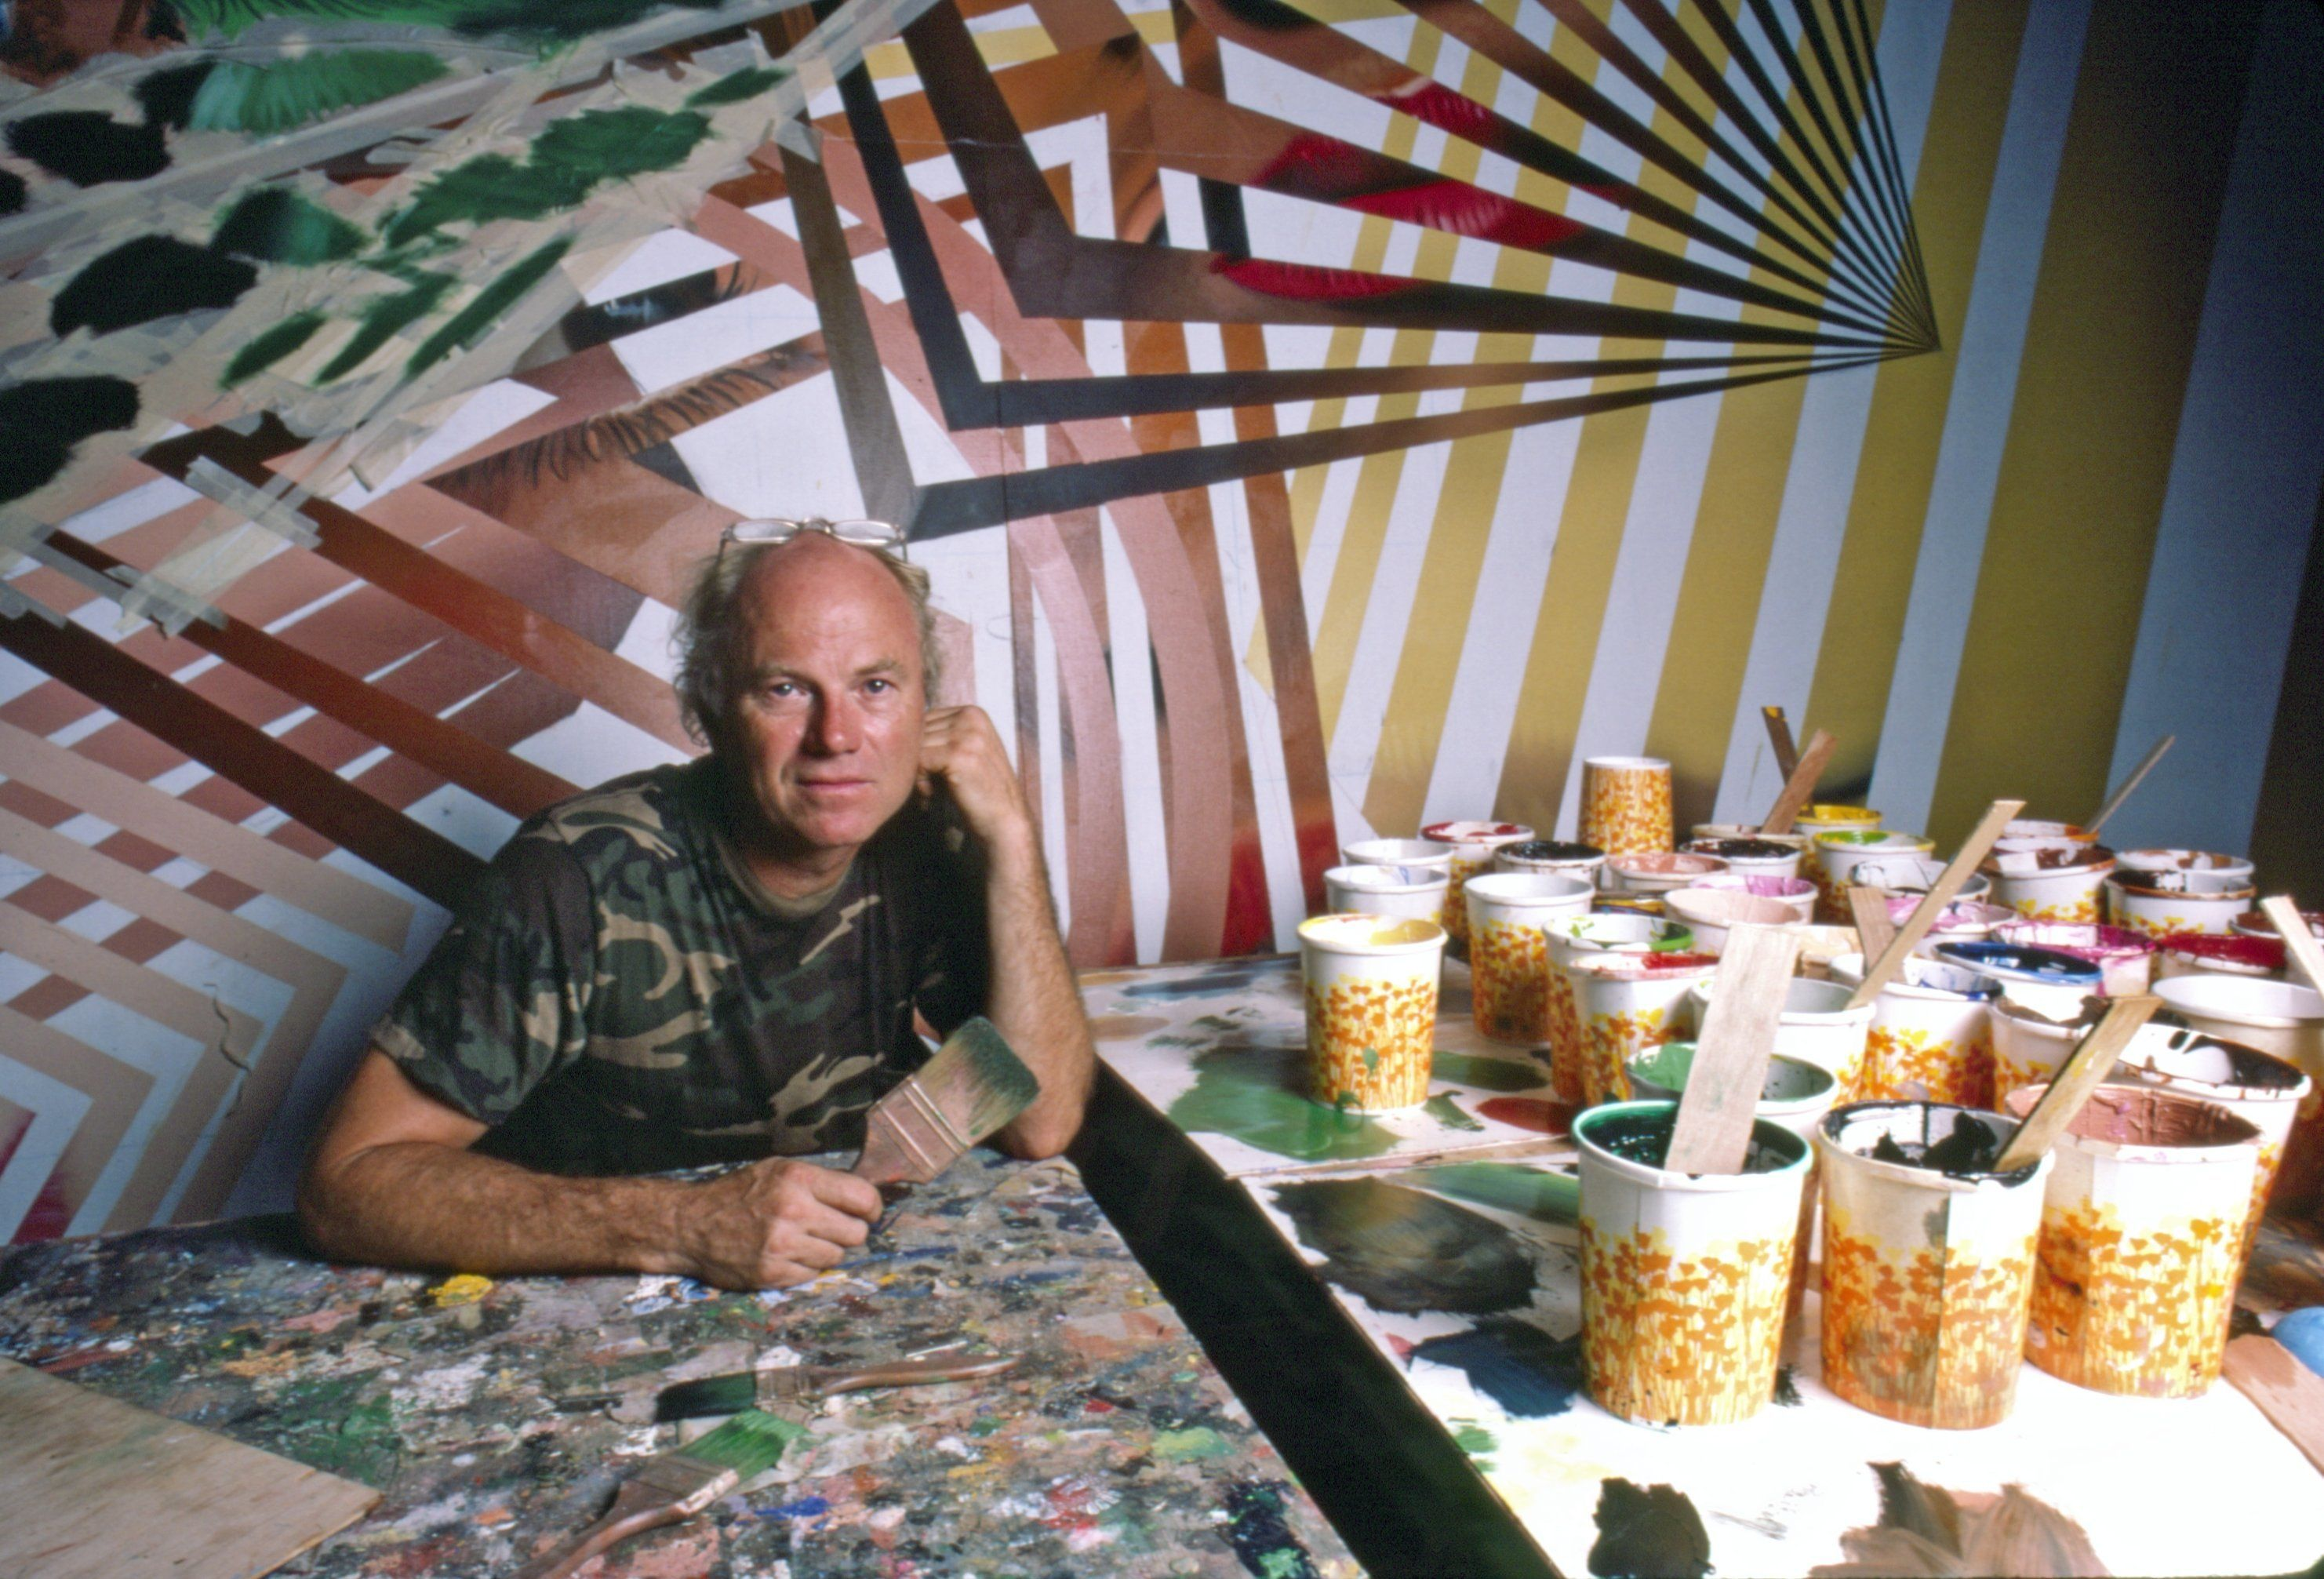 Artist James Rosenquist at work in his studio in Florida, June 1986. (Photo by Jack Mitchell/Getty Images)